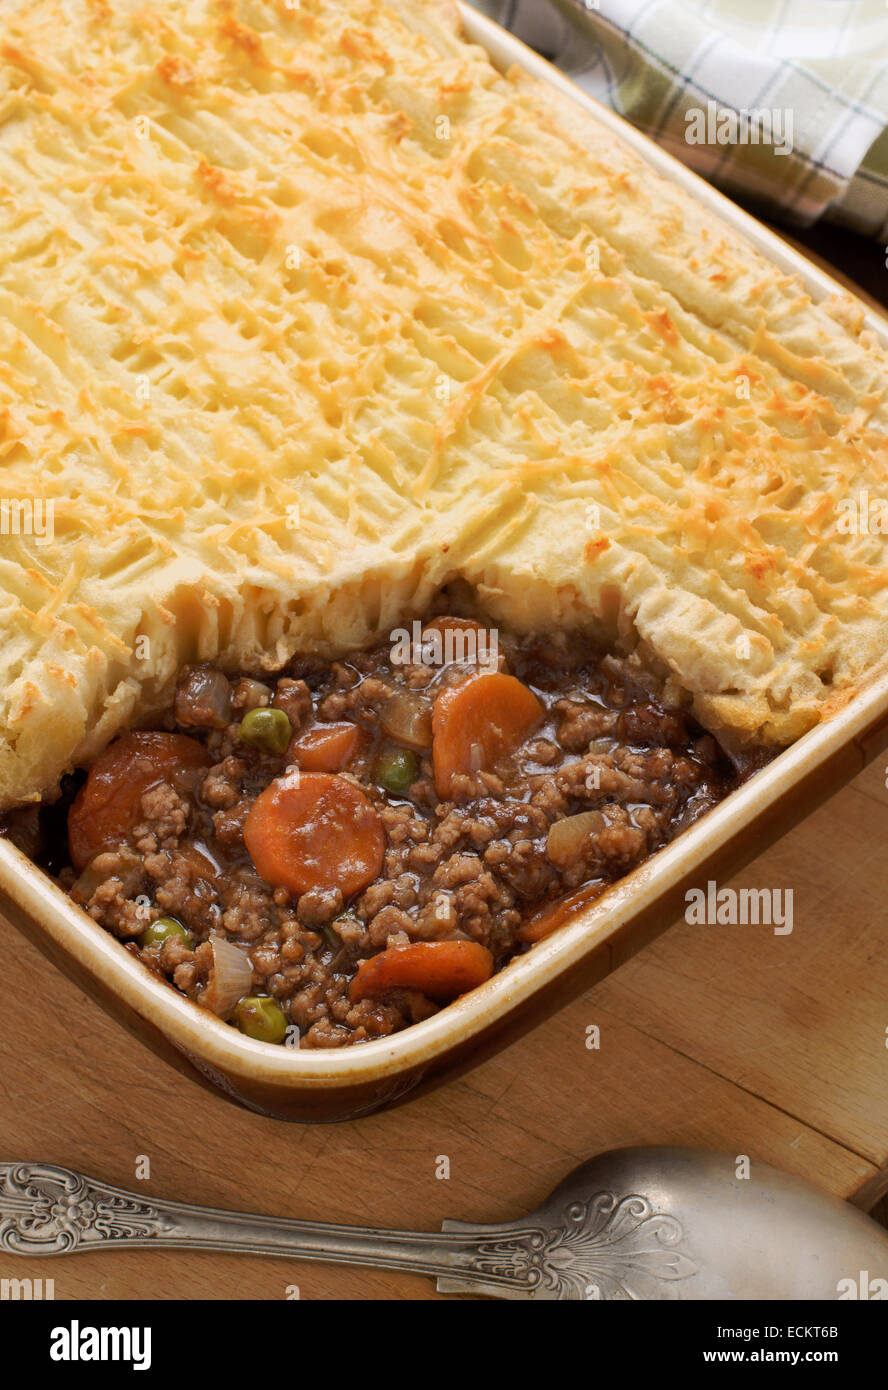 Cottage Pie Or Shepherds Pie Is A Mince Meat And Vegetable